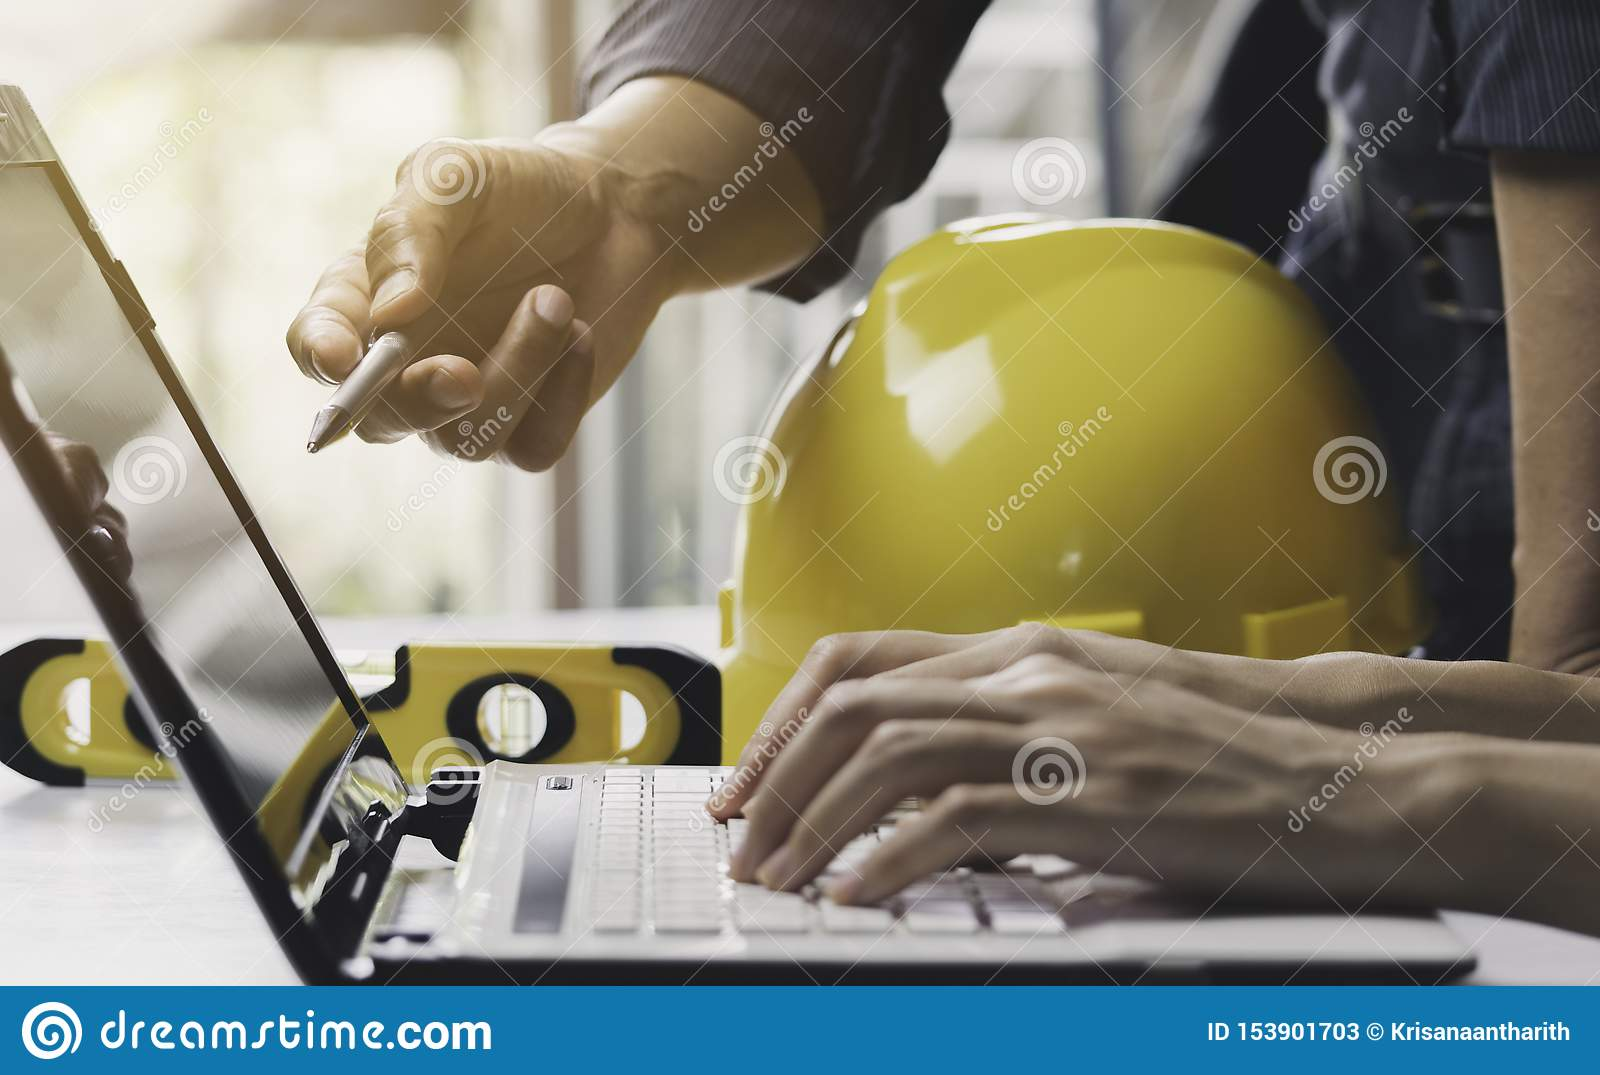 Architect engineer working concept and construction tools or safety equipment on table